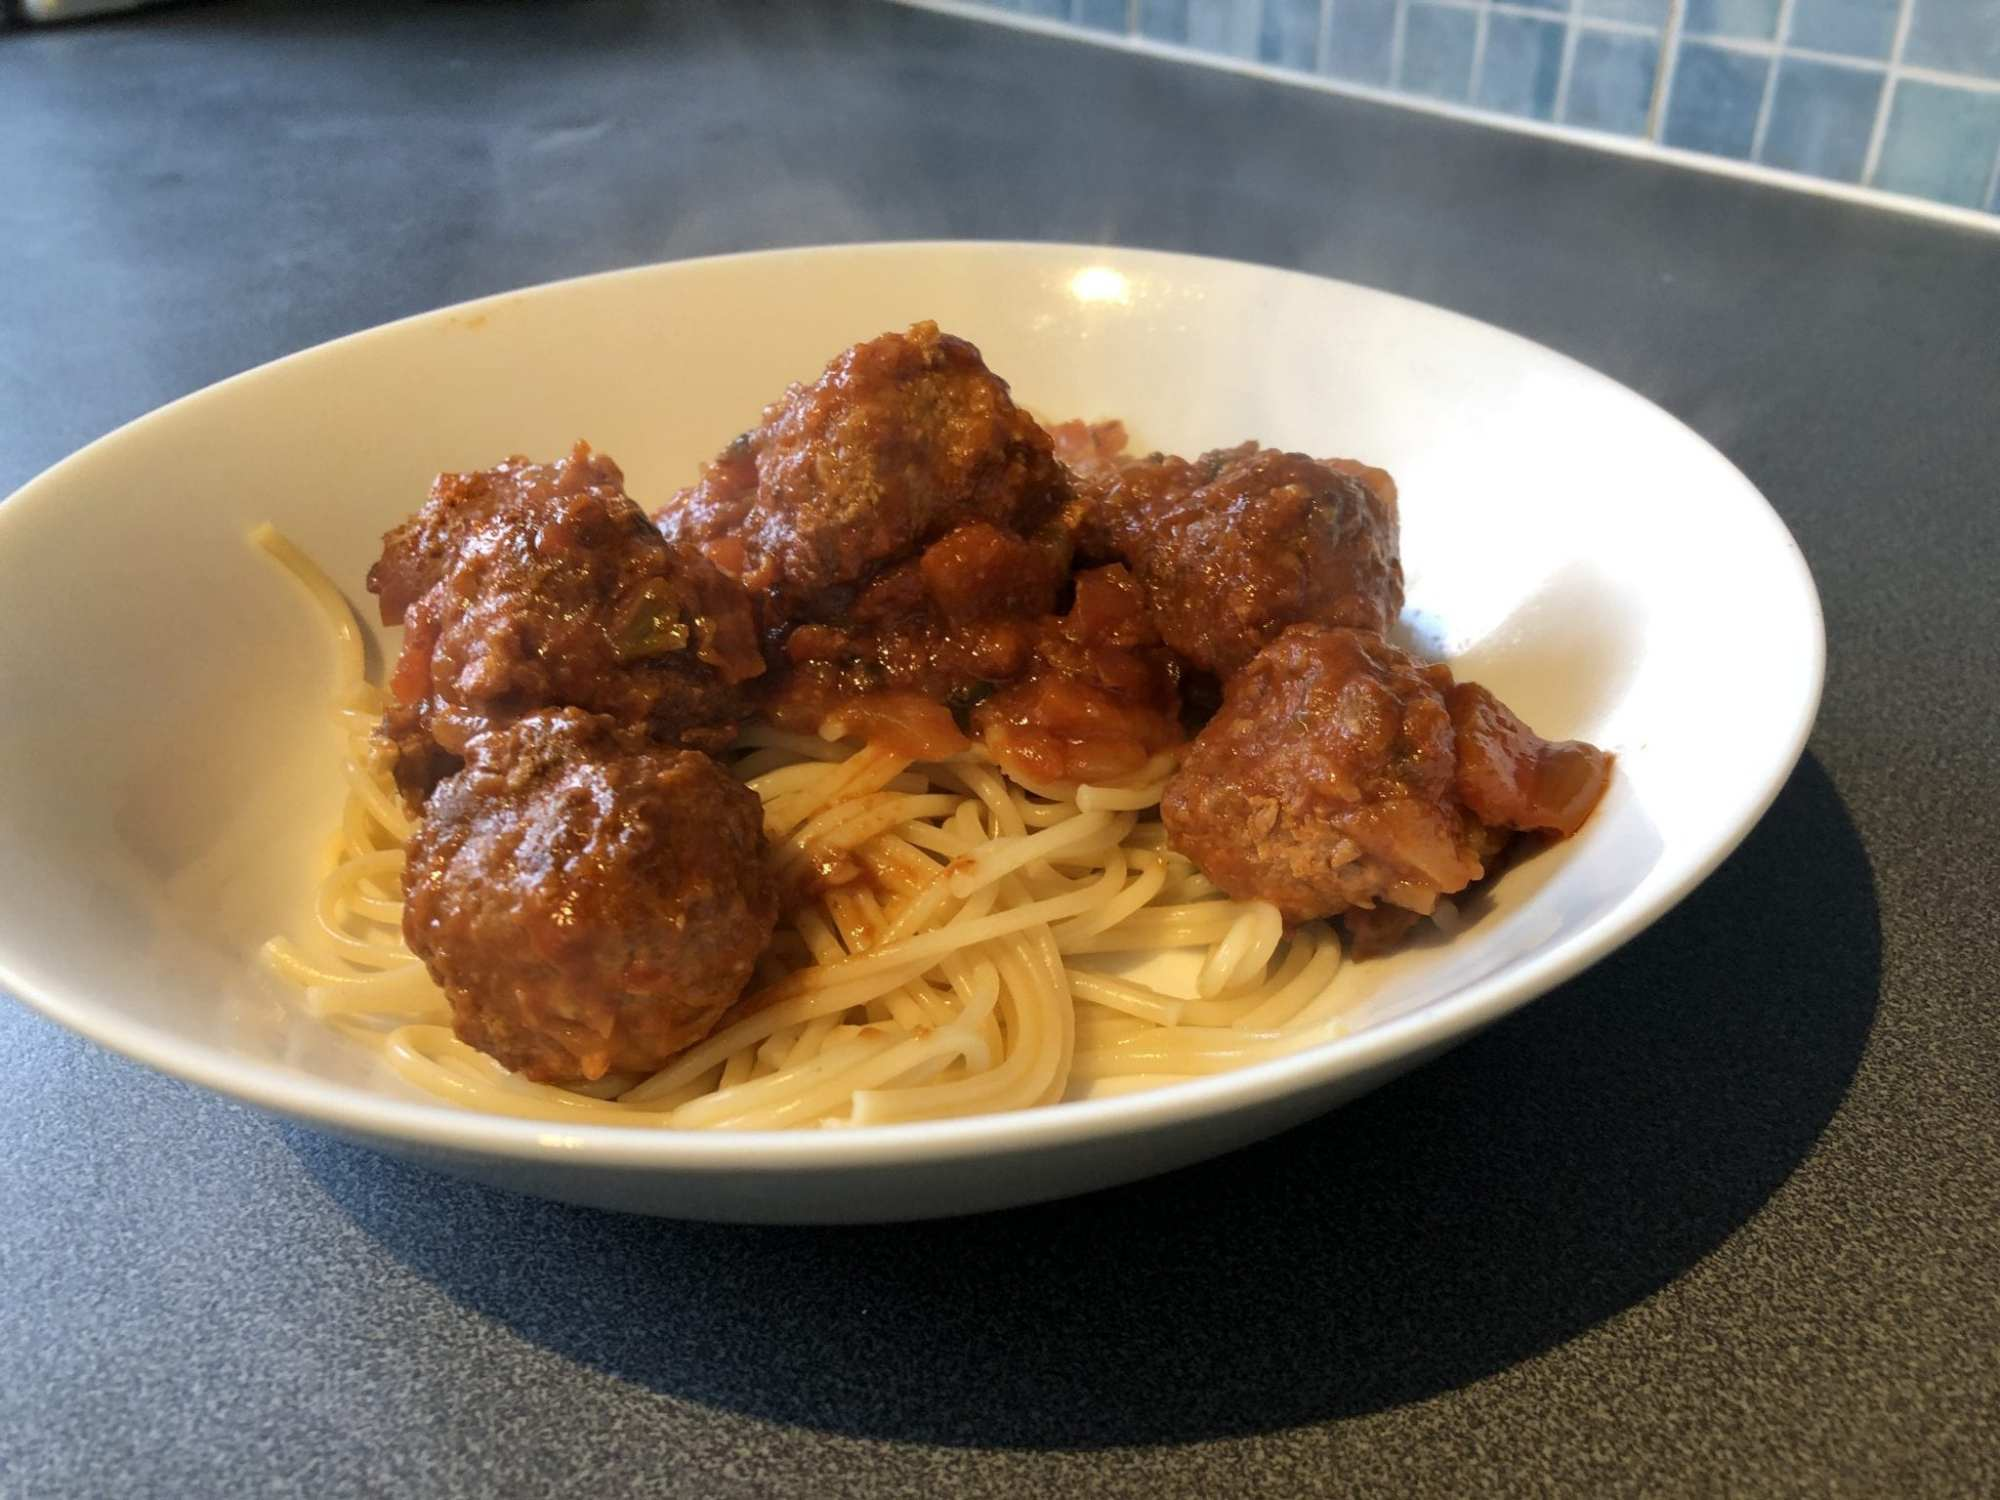 Slow cooker turkey meatballs with pasta